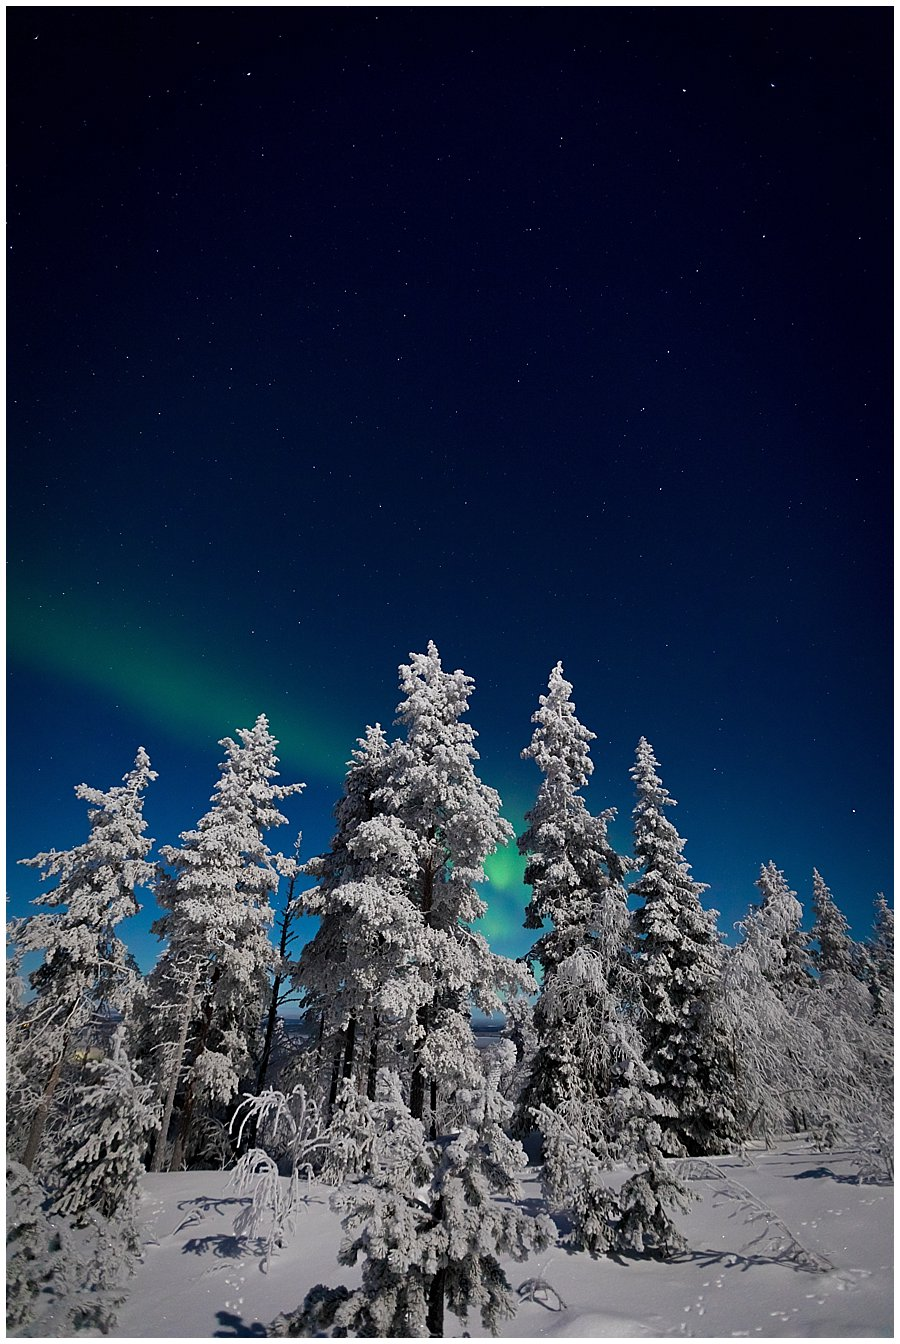 A single green band appears behind the trees in Levi Finland by Wild Connections Photography